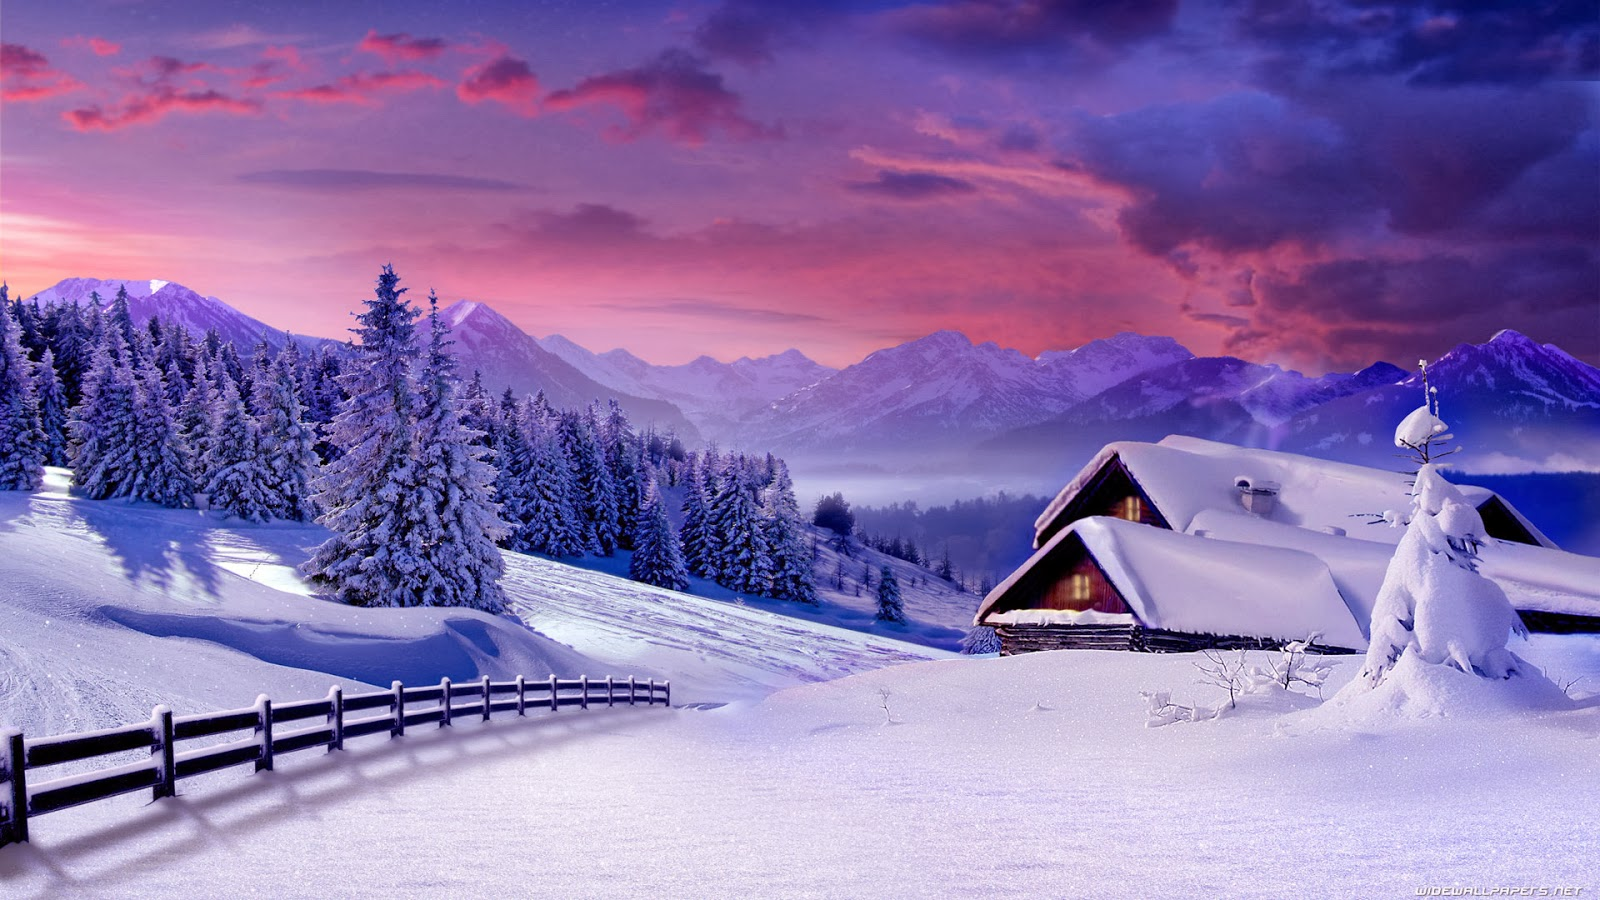 Christmas Winter Scenes Desktop Wallpaper